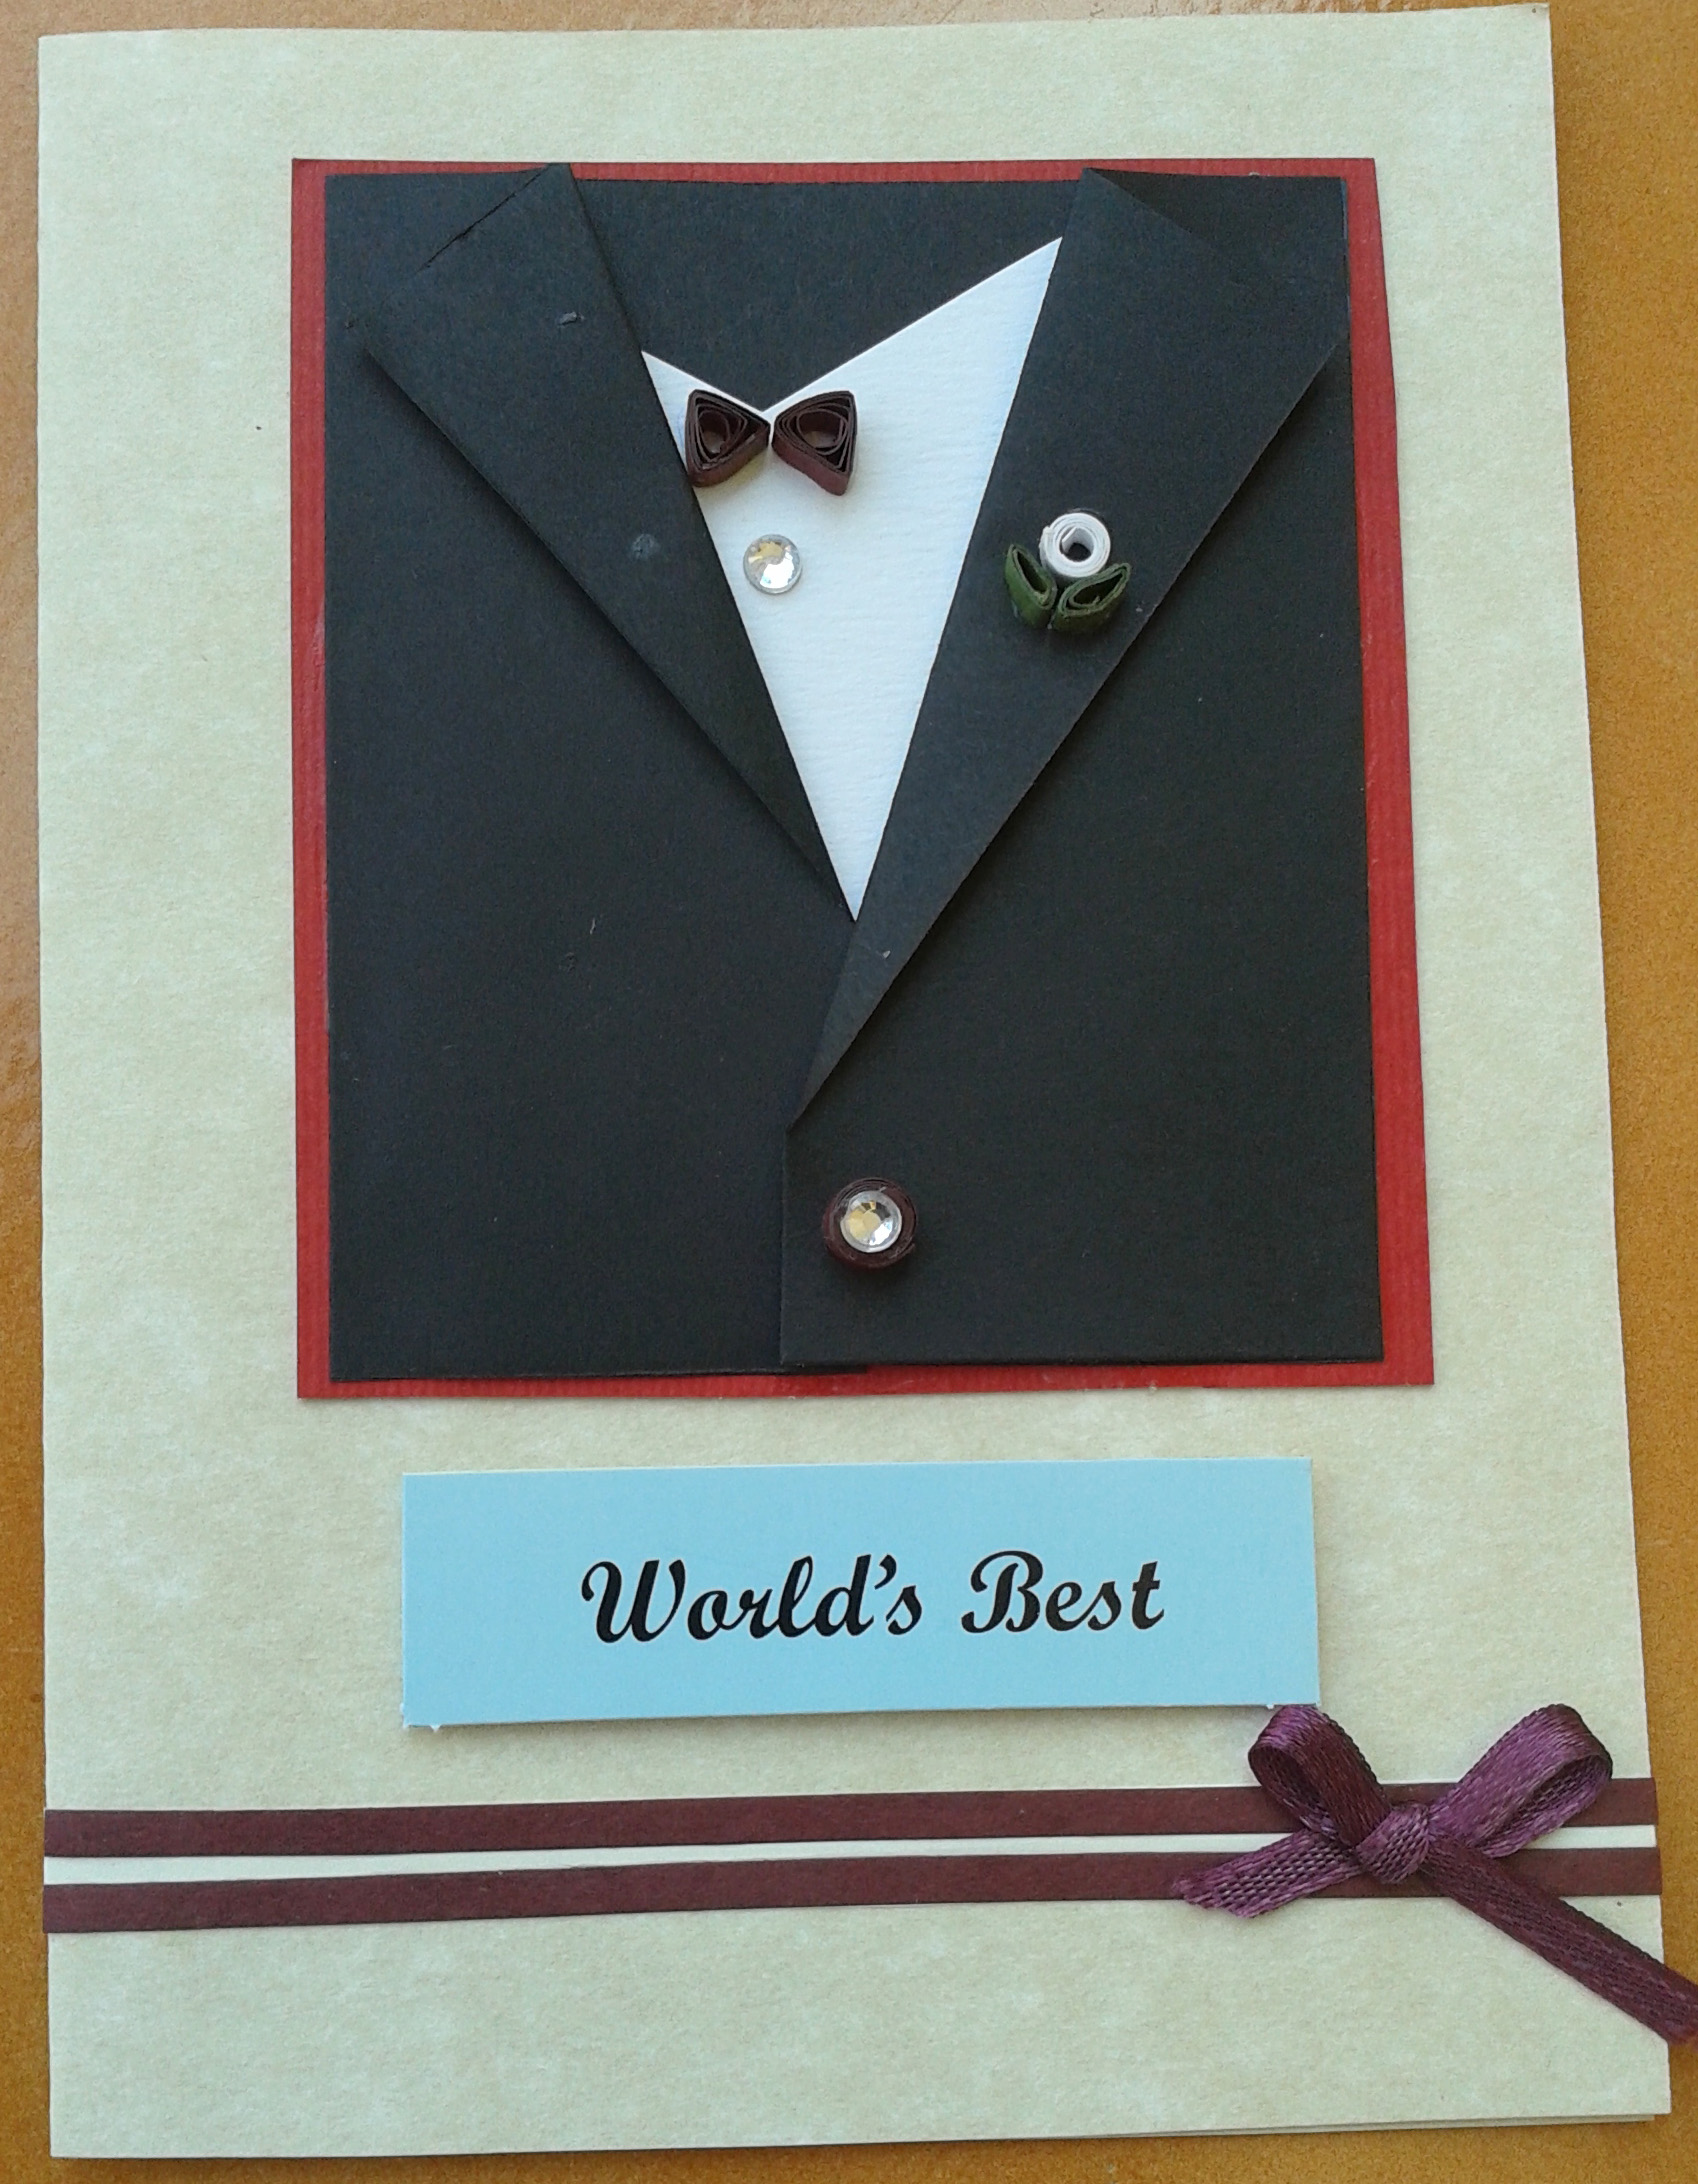 Buy World's Best Black Suit Card For Him ShipMyCard Com